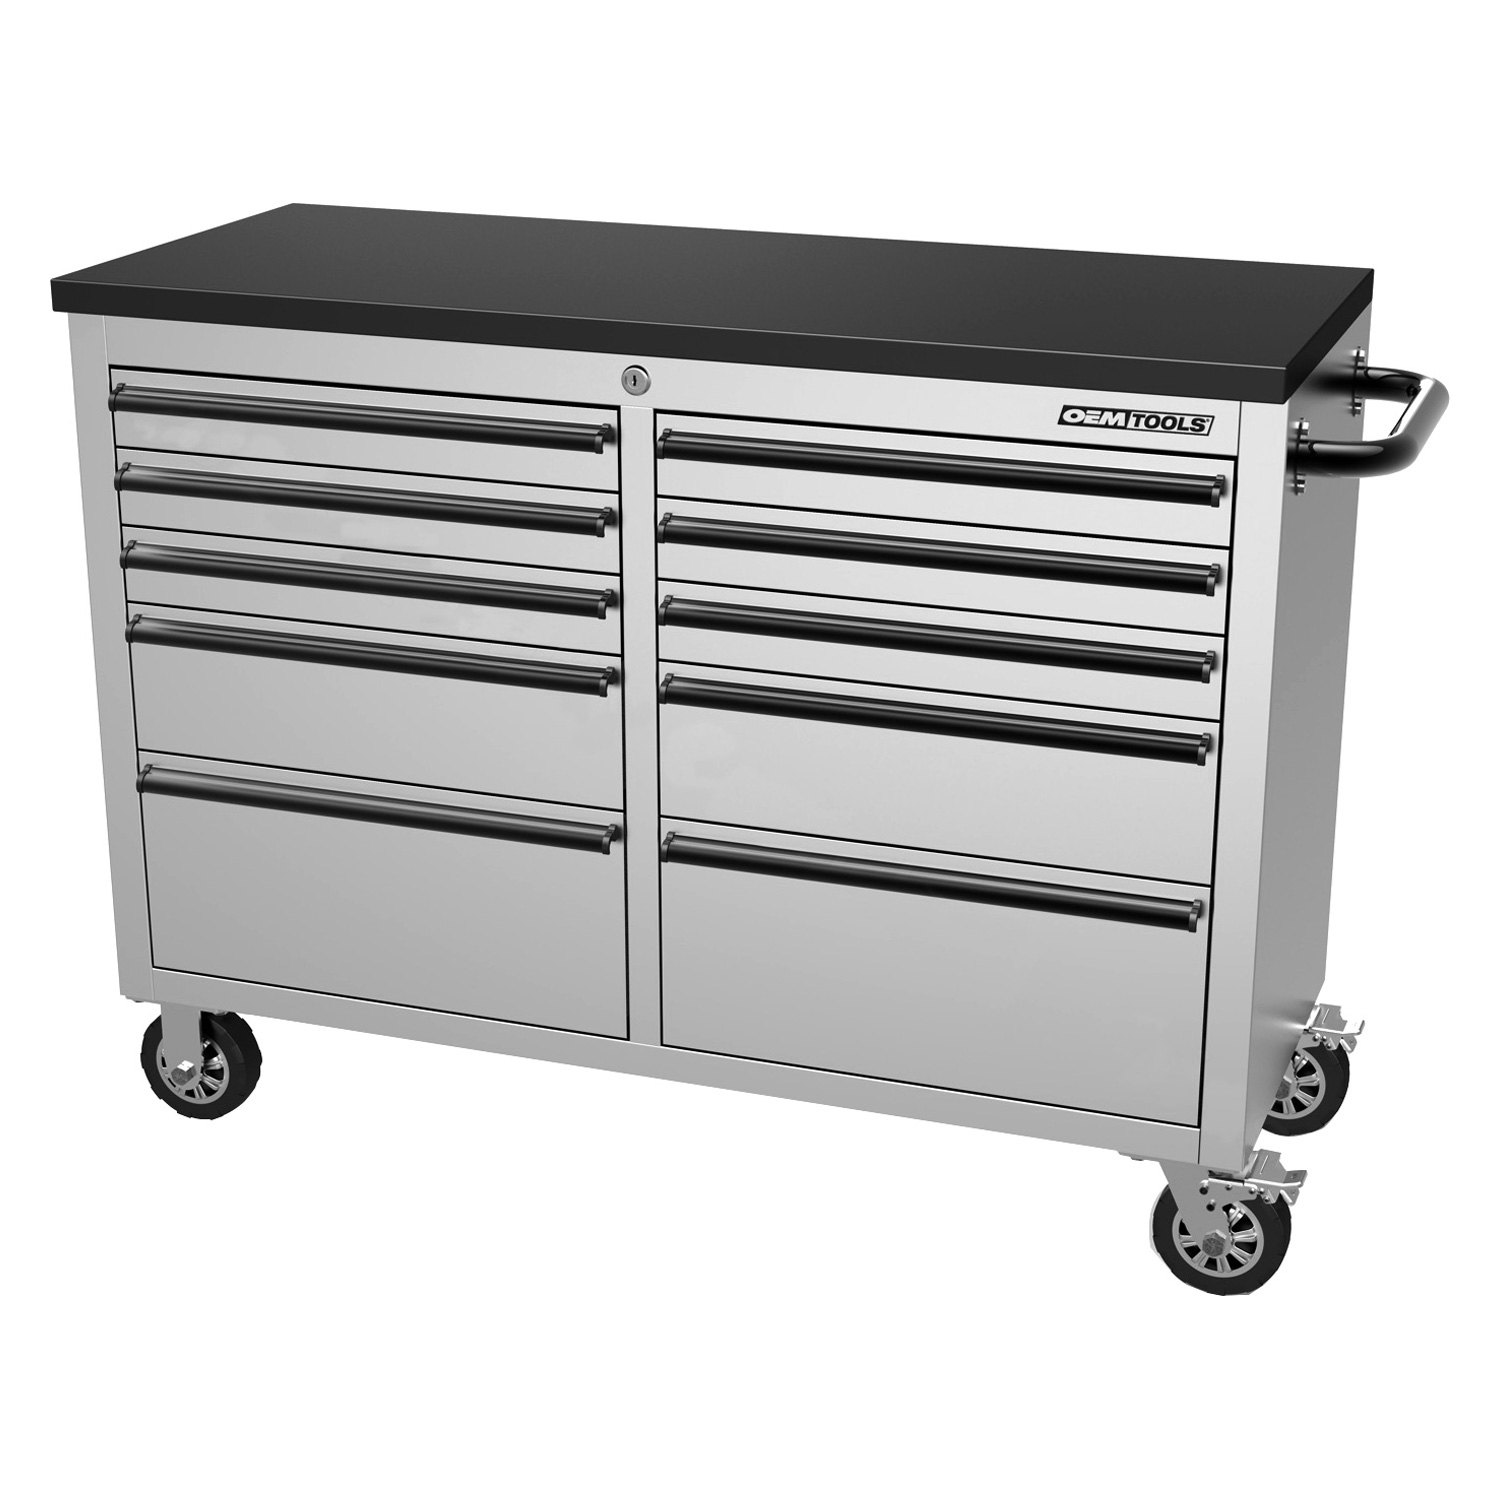 Oem tools 24614 stainless steel 46 10 drawer cabinet for Stainless steel cabinet door